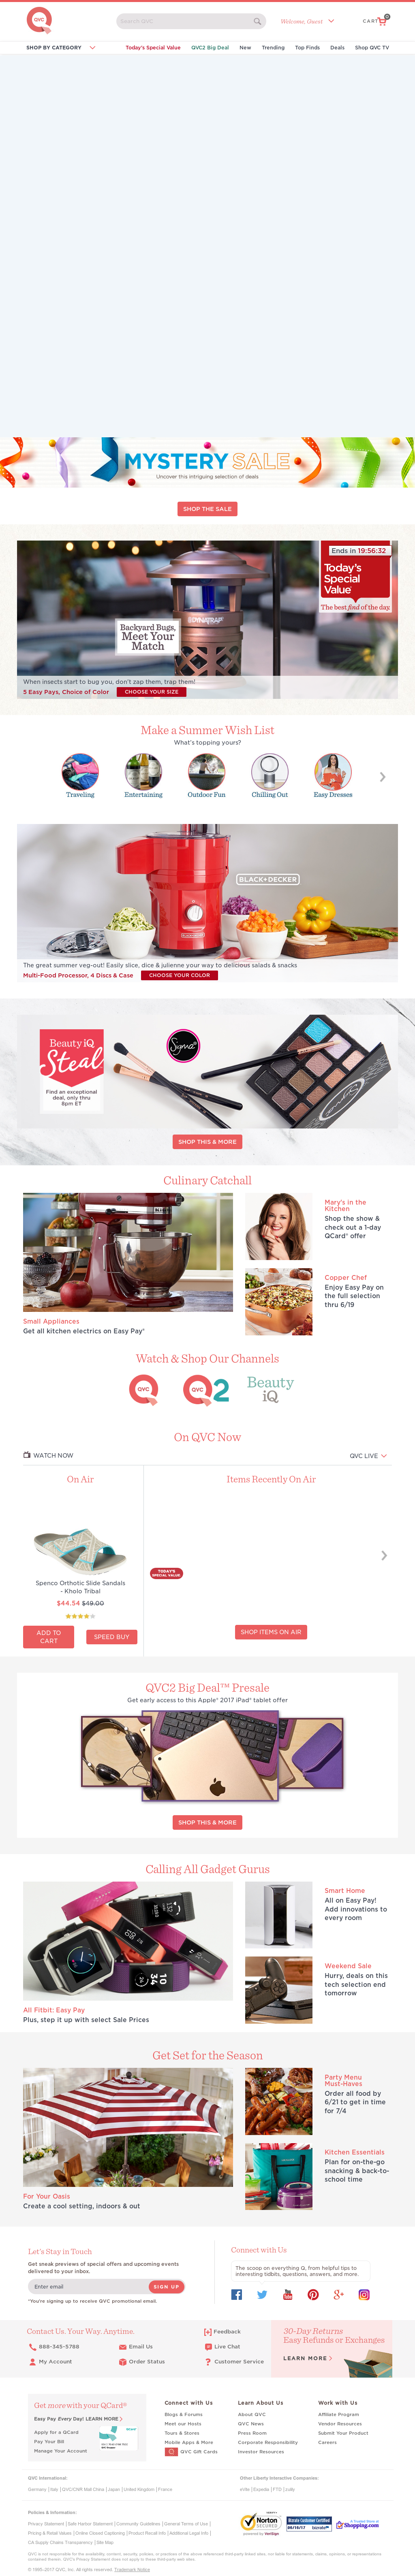 QVC Competitors, Revenue and Employees - Owler Company Profile